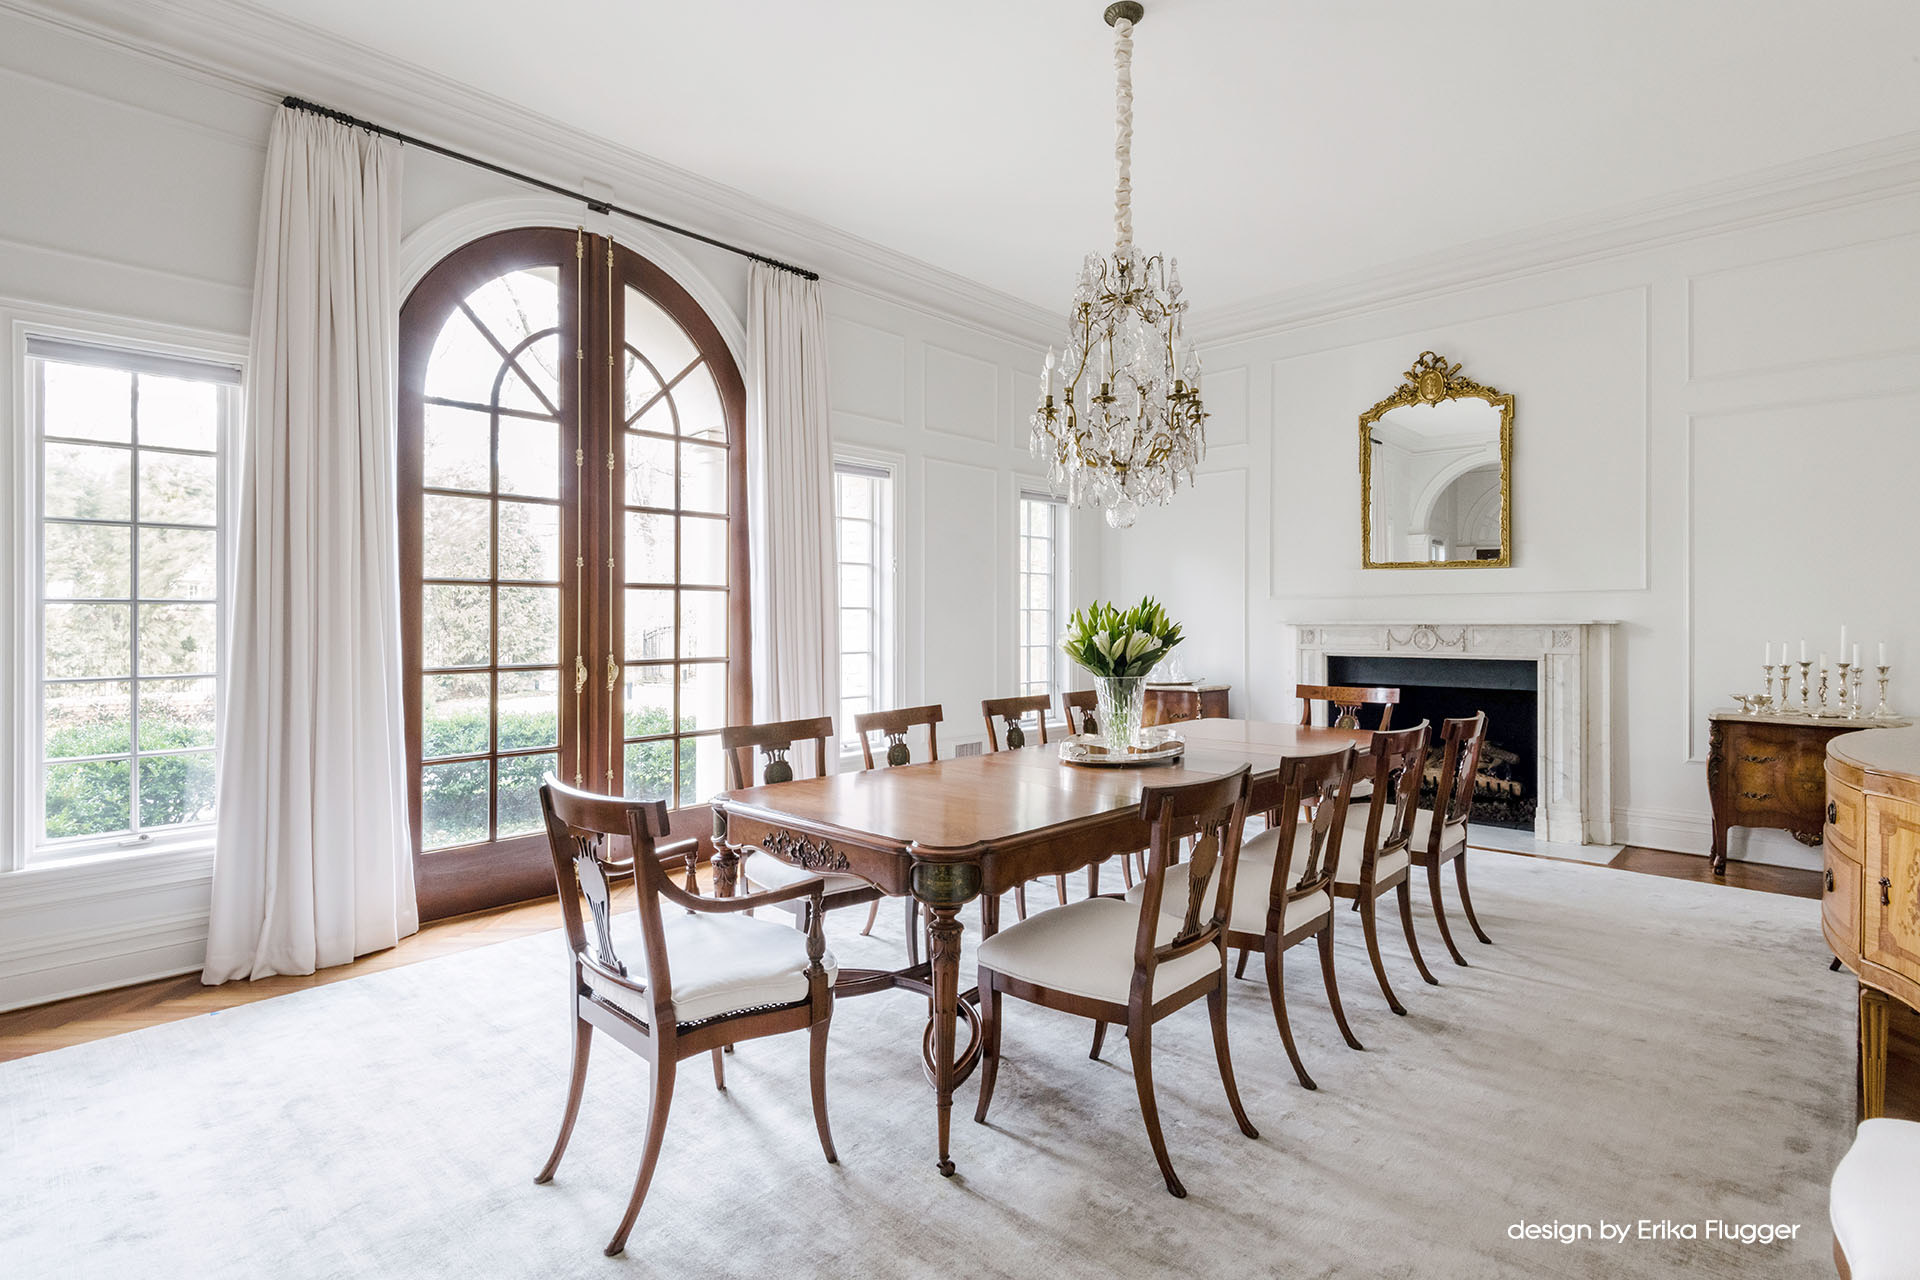 NCY interior design_dining room _by Erika Flugger